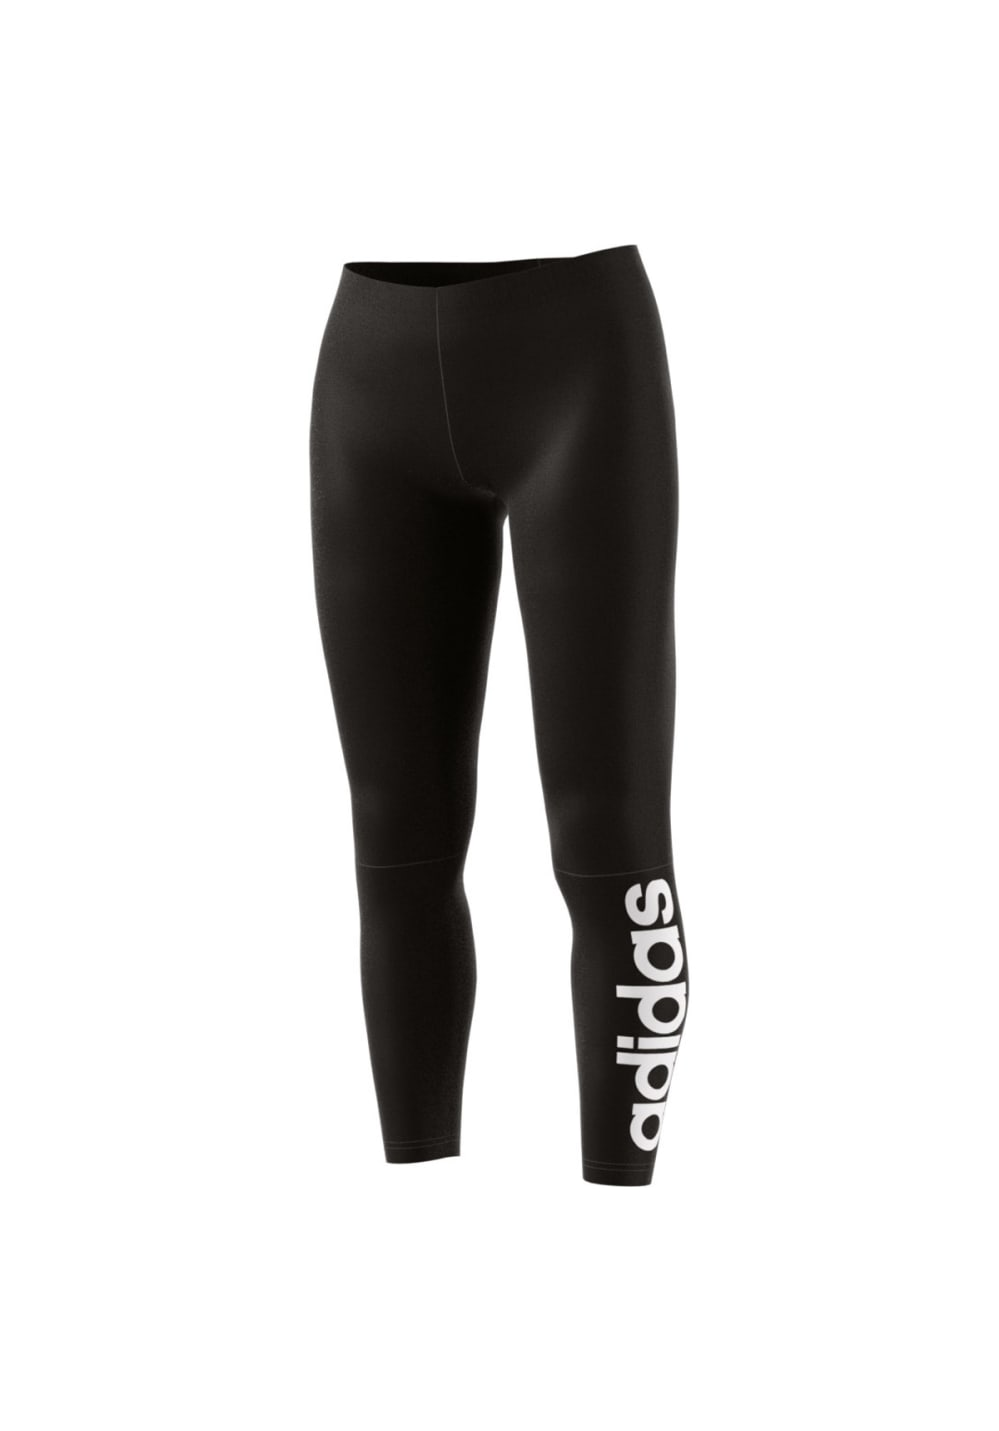 adidas Essentials Linear Tight - Fitnesshosen für Damen - Schwarz